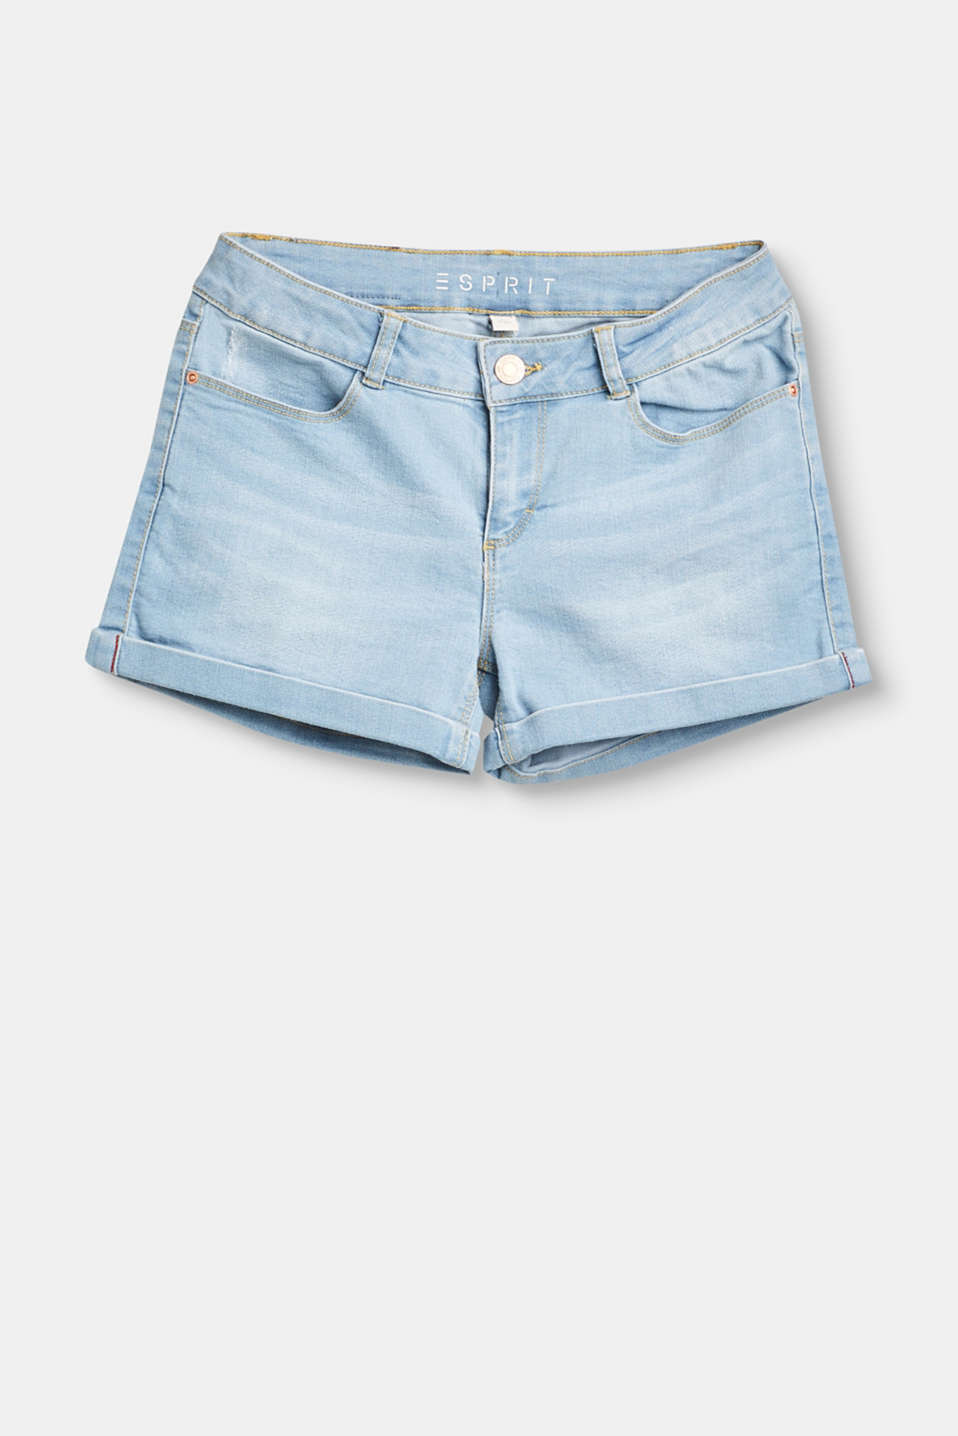 Esprit - Stretch denim shorts with an adjustable waistband